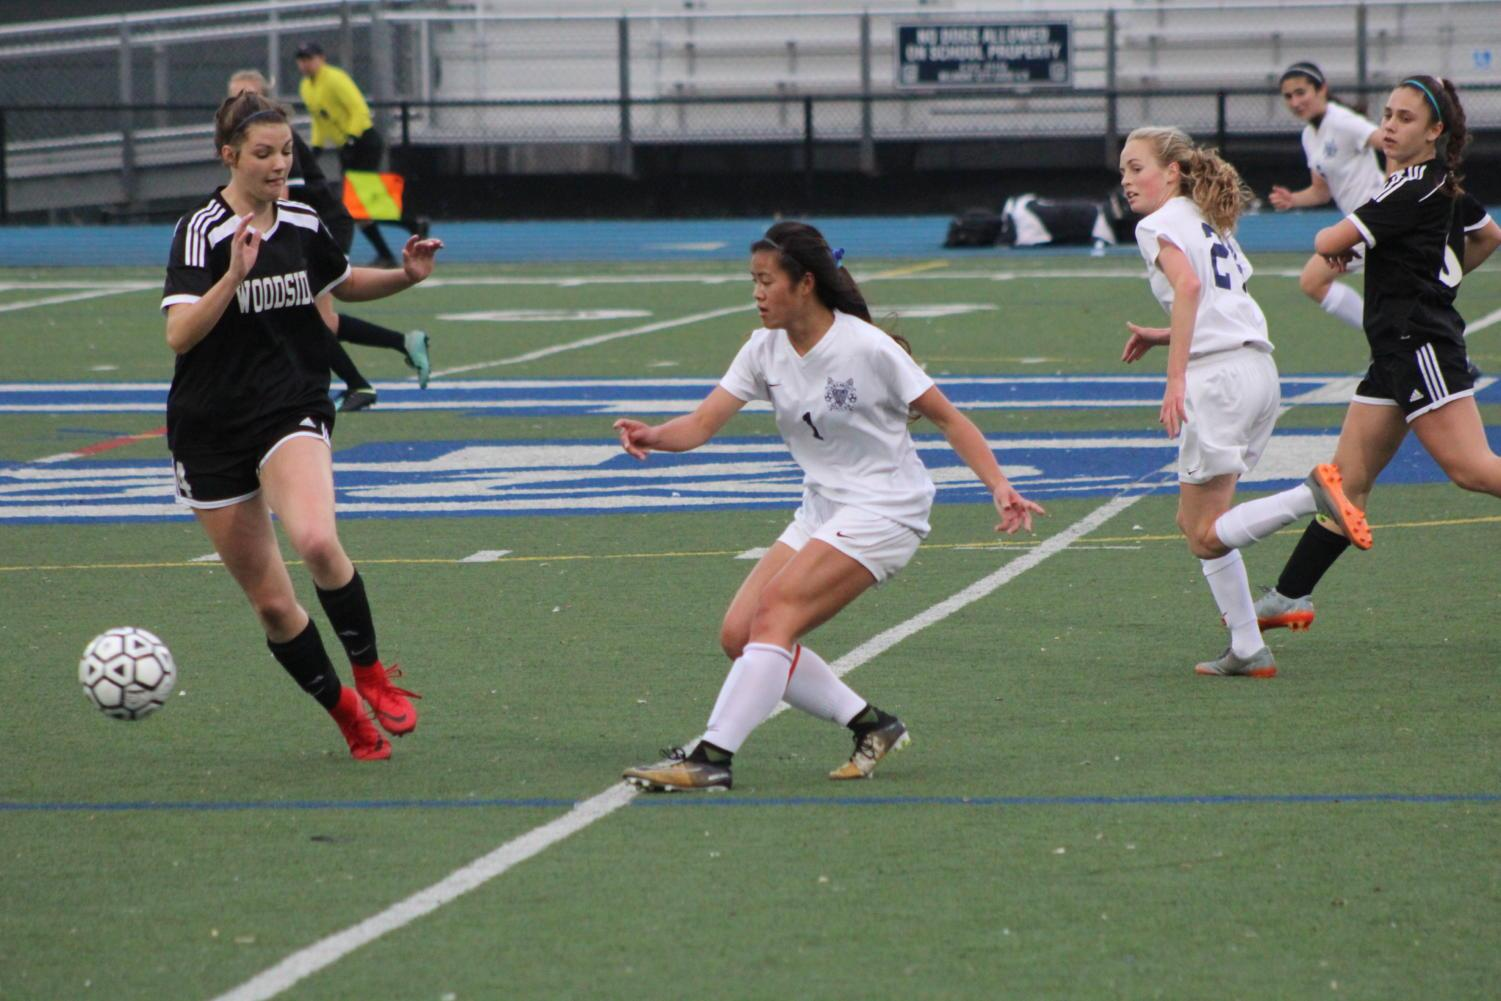 Samantha Phan, a junior, fights for the ball with hopes of scoring for the Scots.